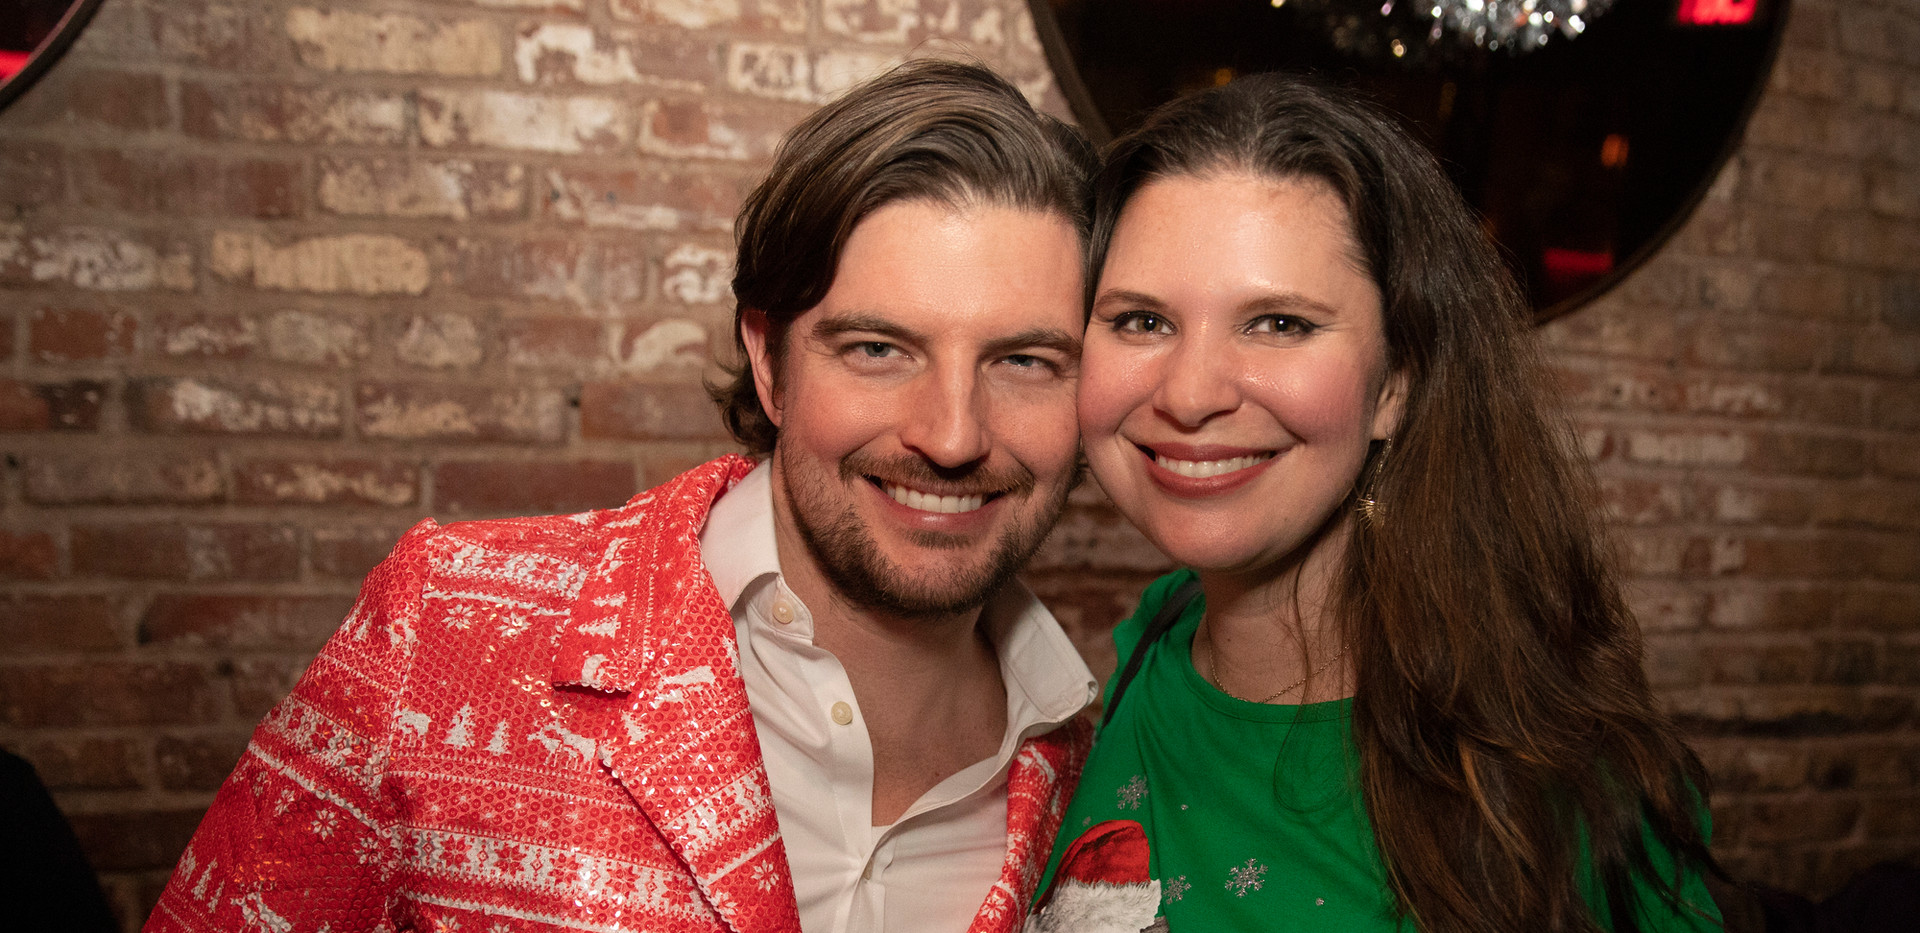 Ugly Sweater Party 12_7_18 18.jpg